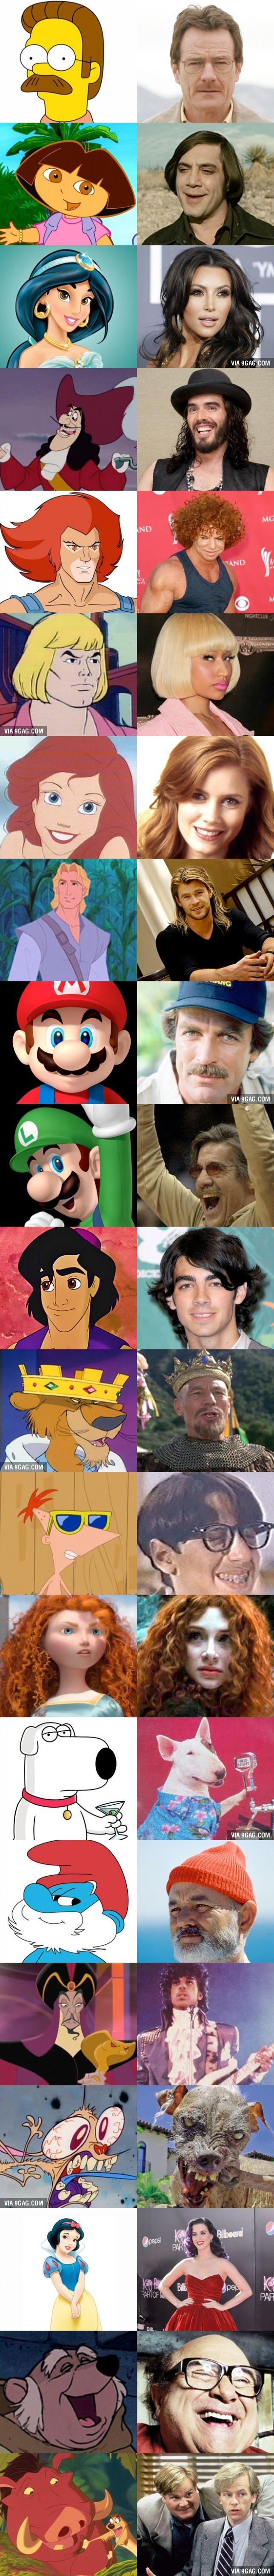 Famous Cartoons And Their Celebrity Doppelgängers